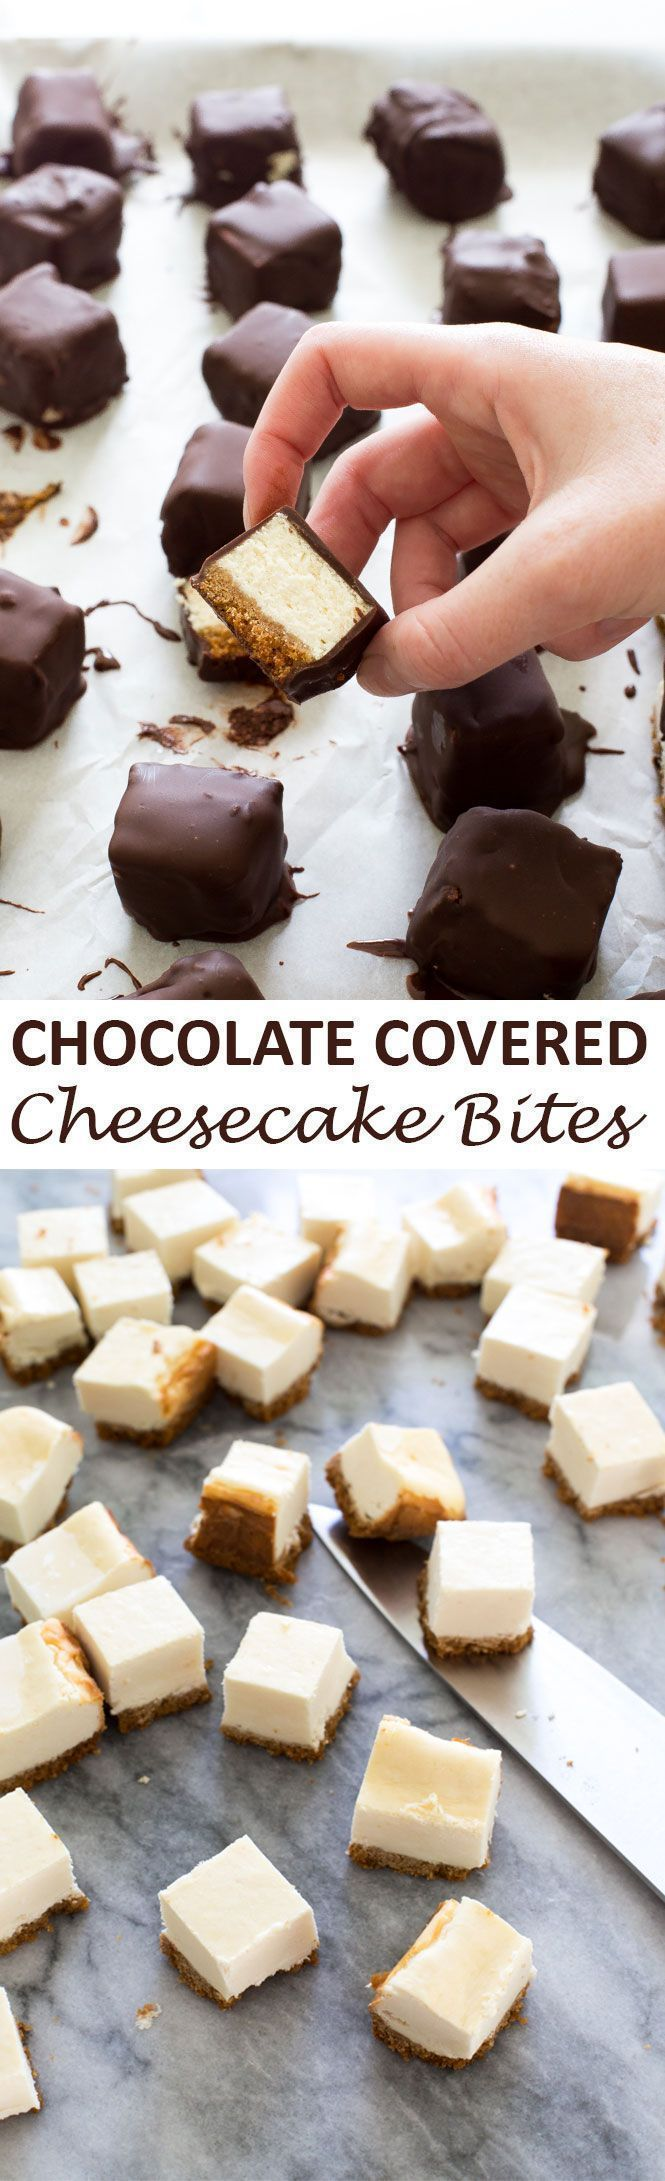 Chocolate Covered Cheesecake Bites. Perfect bite-sized cheesecake covered in a sweet chocolate shell coating. They are extremely addicting!…